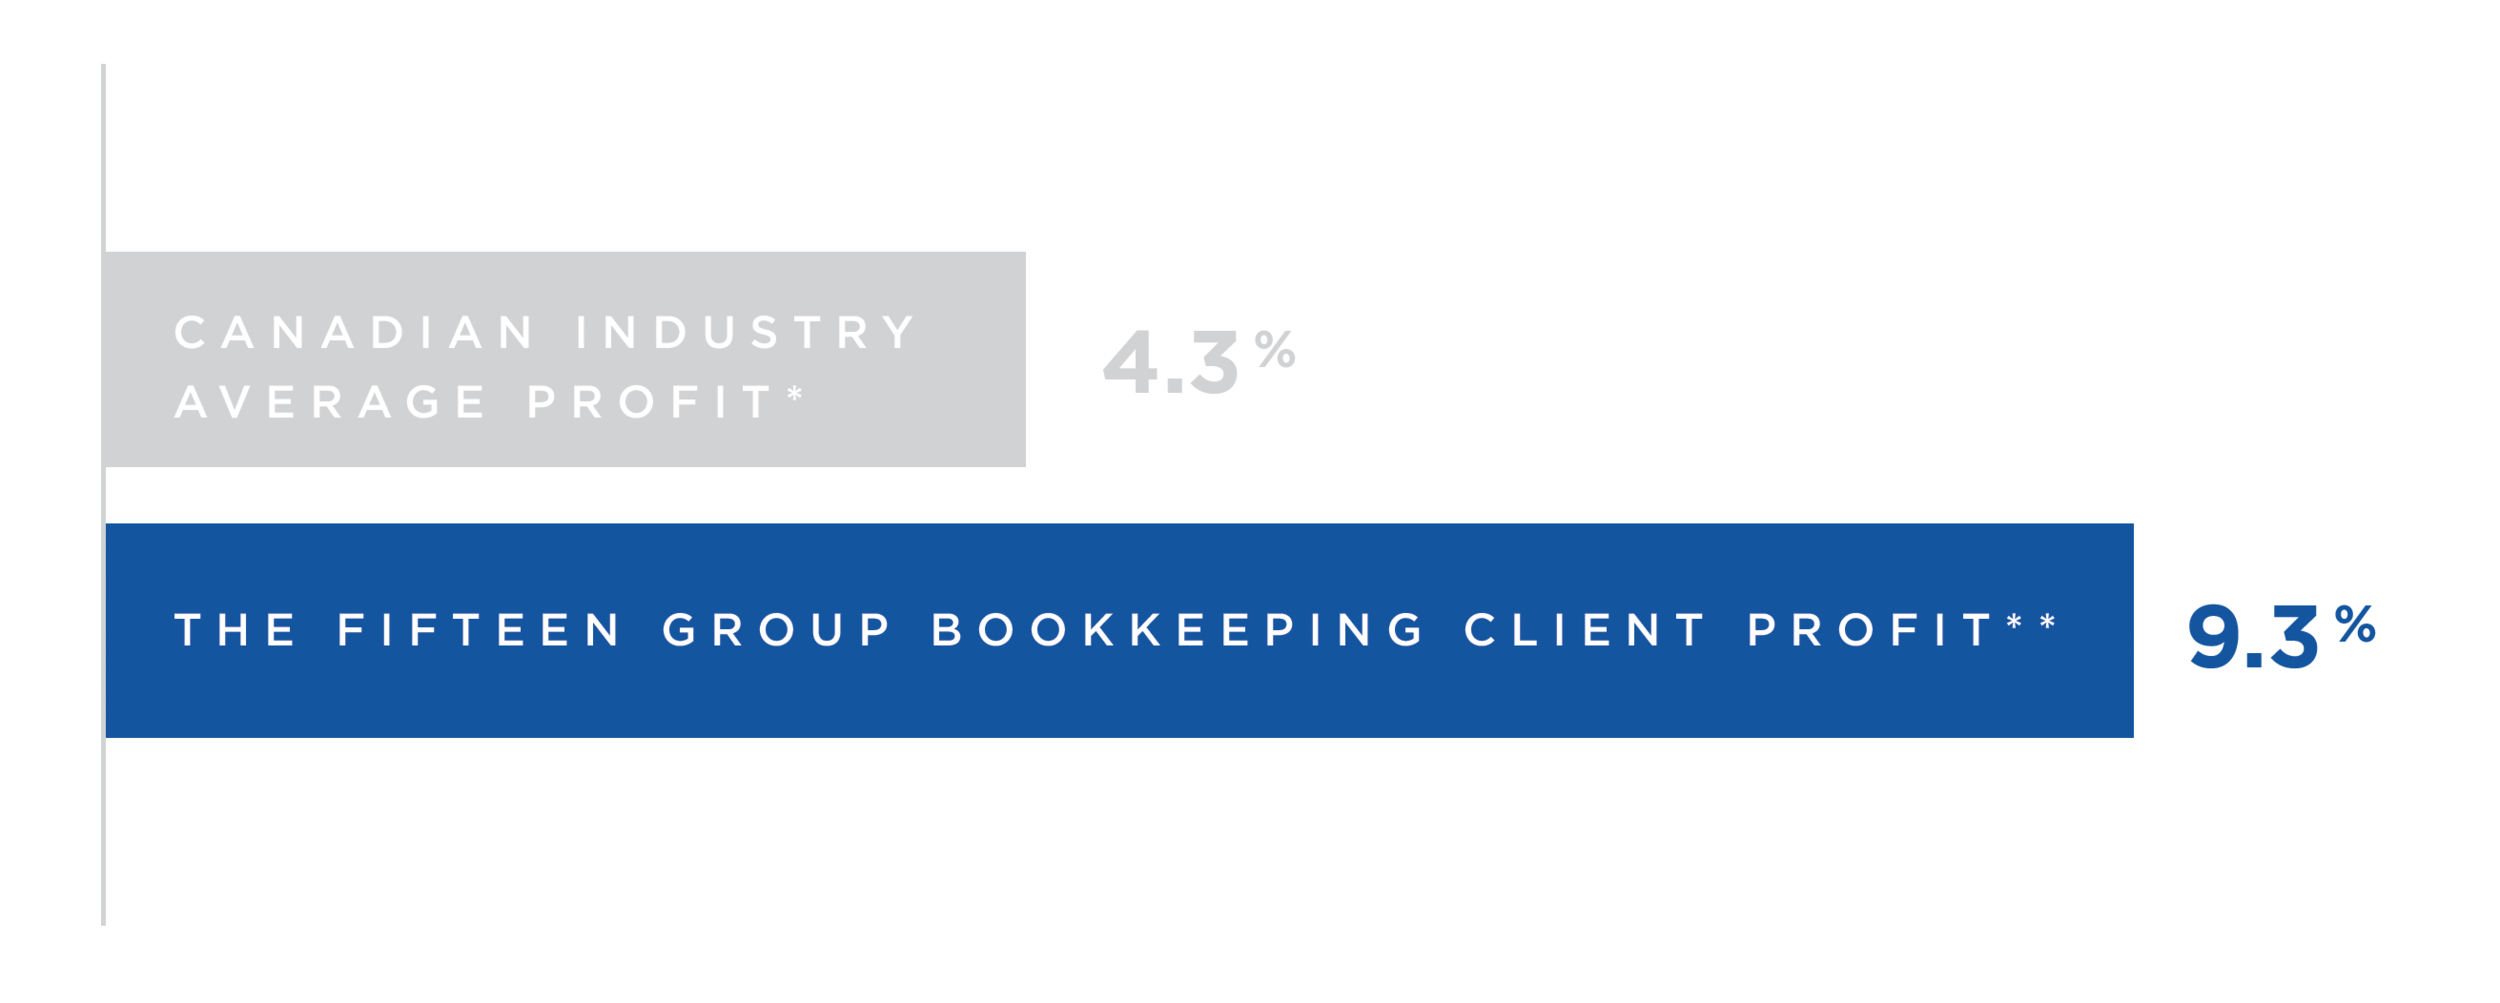 * Source: 2017 Foodservice Operations Report, Statistics Canada and CRFA  **Based on the average profit for clients using our bookkeeping package for at least one year